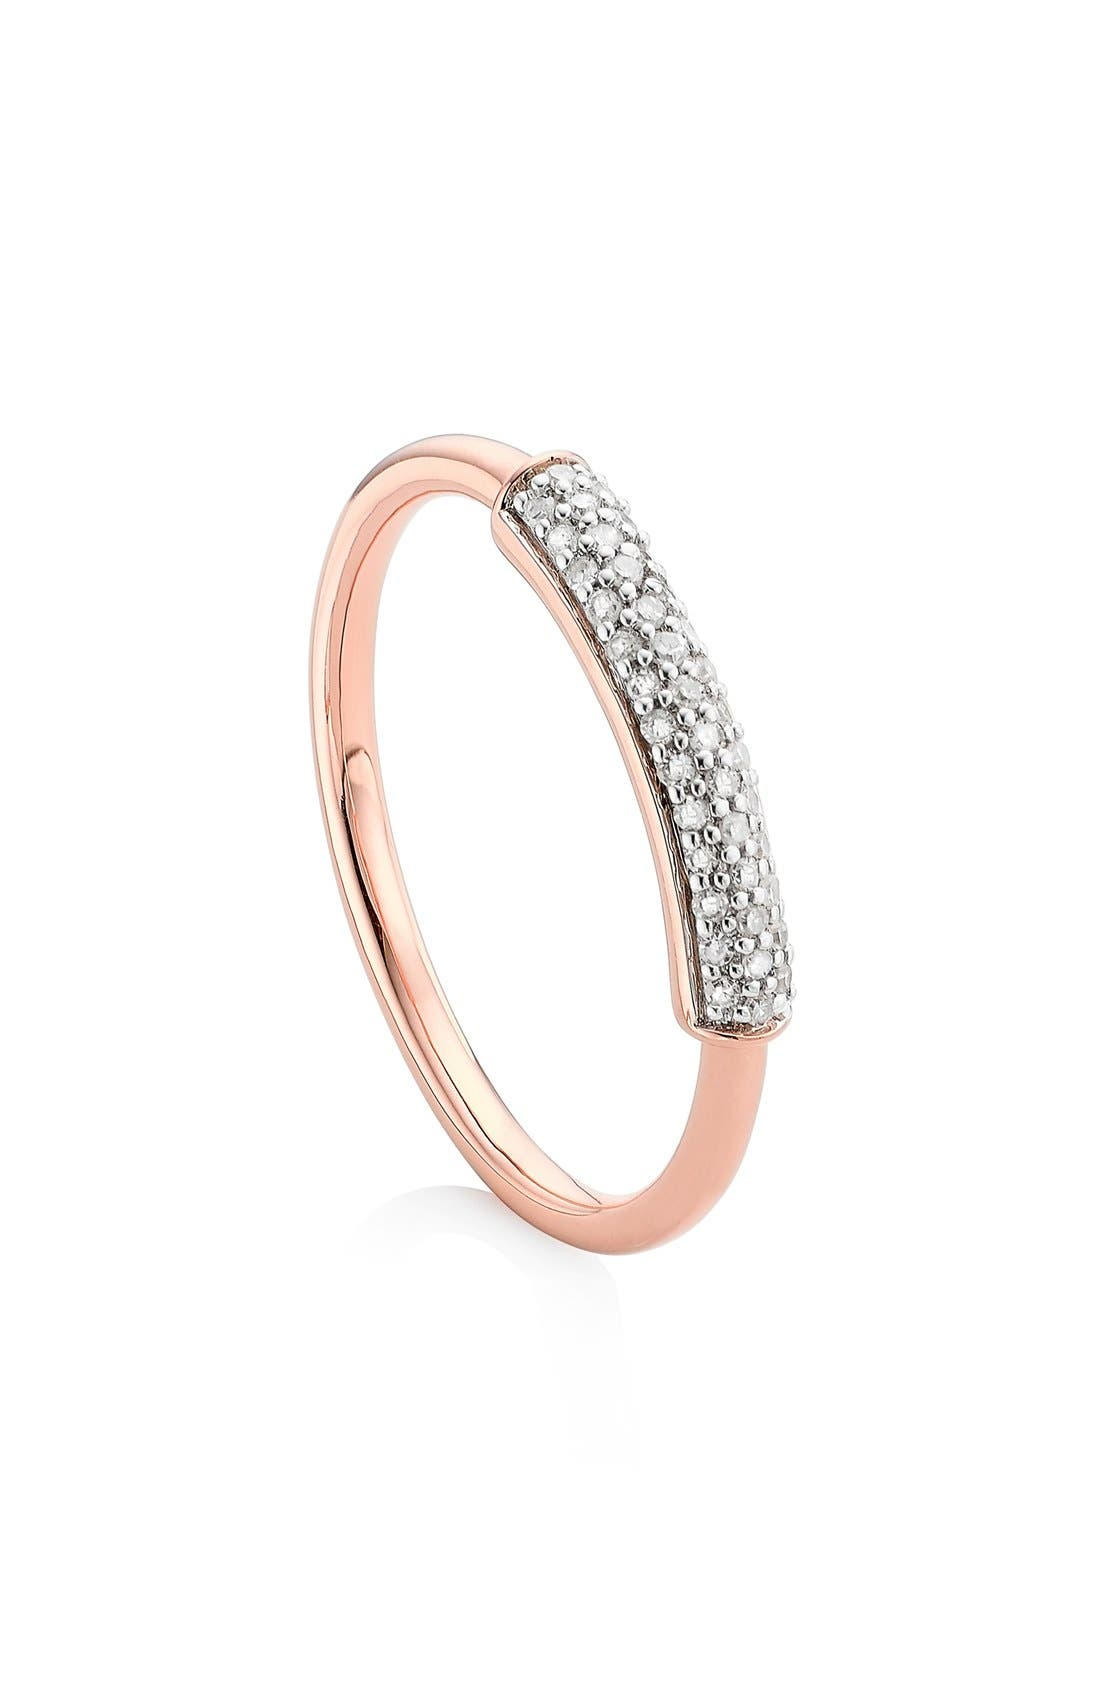 MONICA VINADER 'Stellar' Diamond Band Ring, Main, color, ROSE GOLD